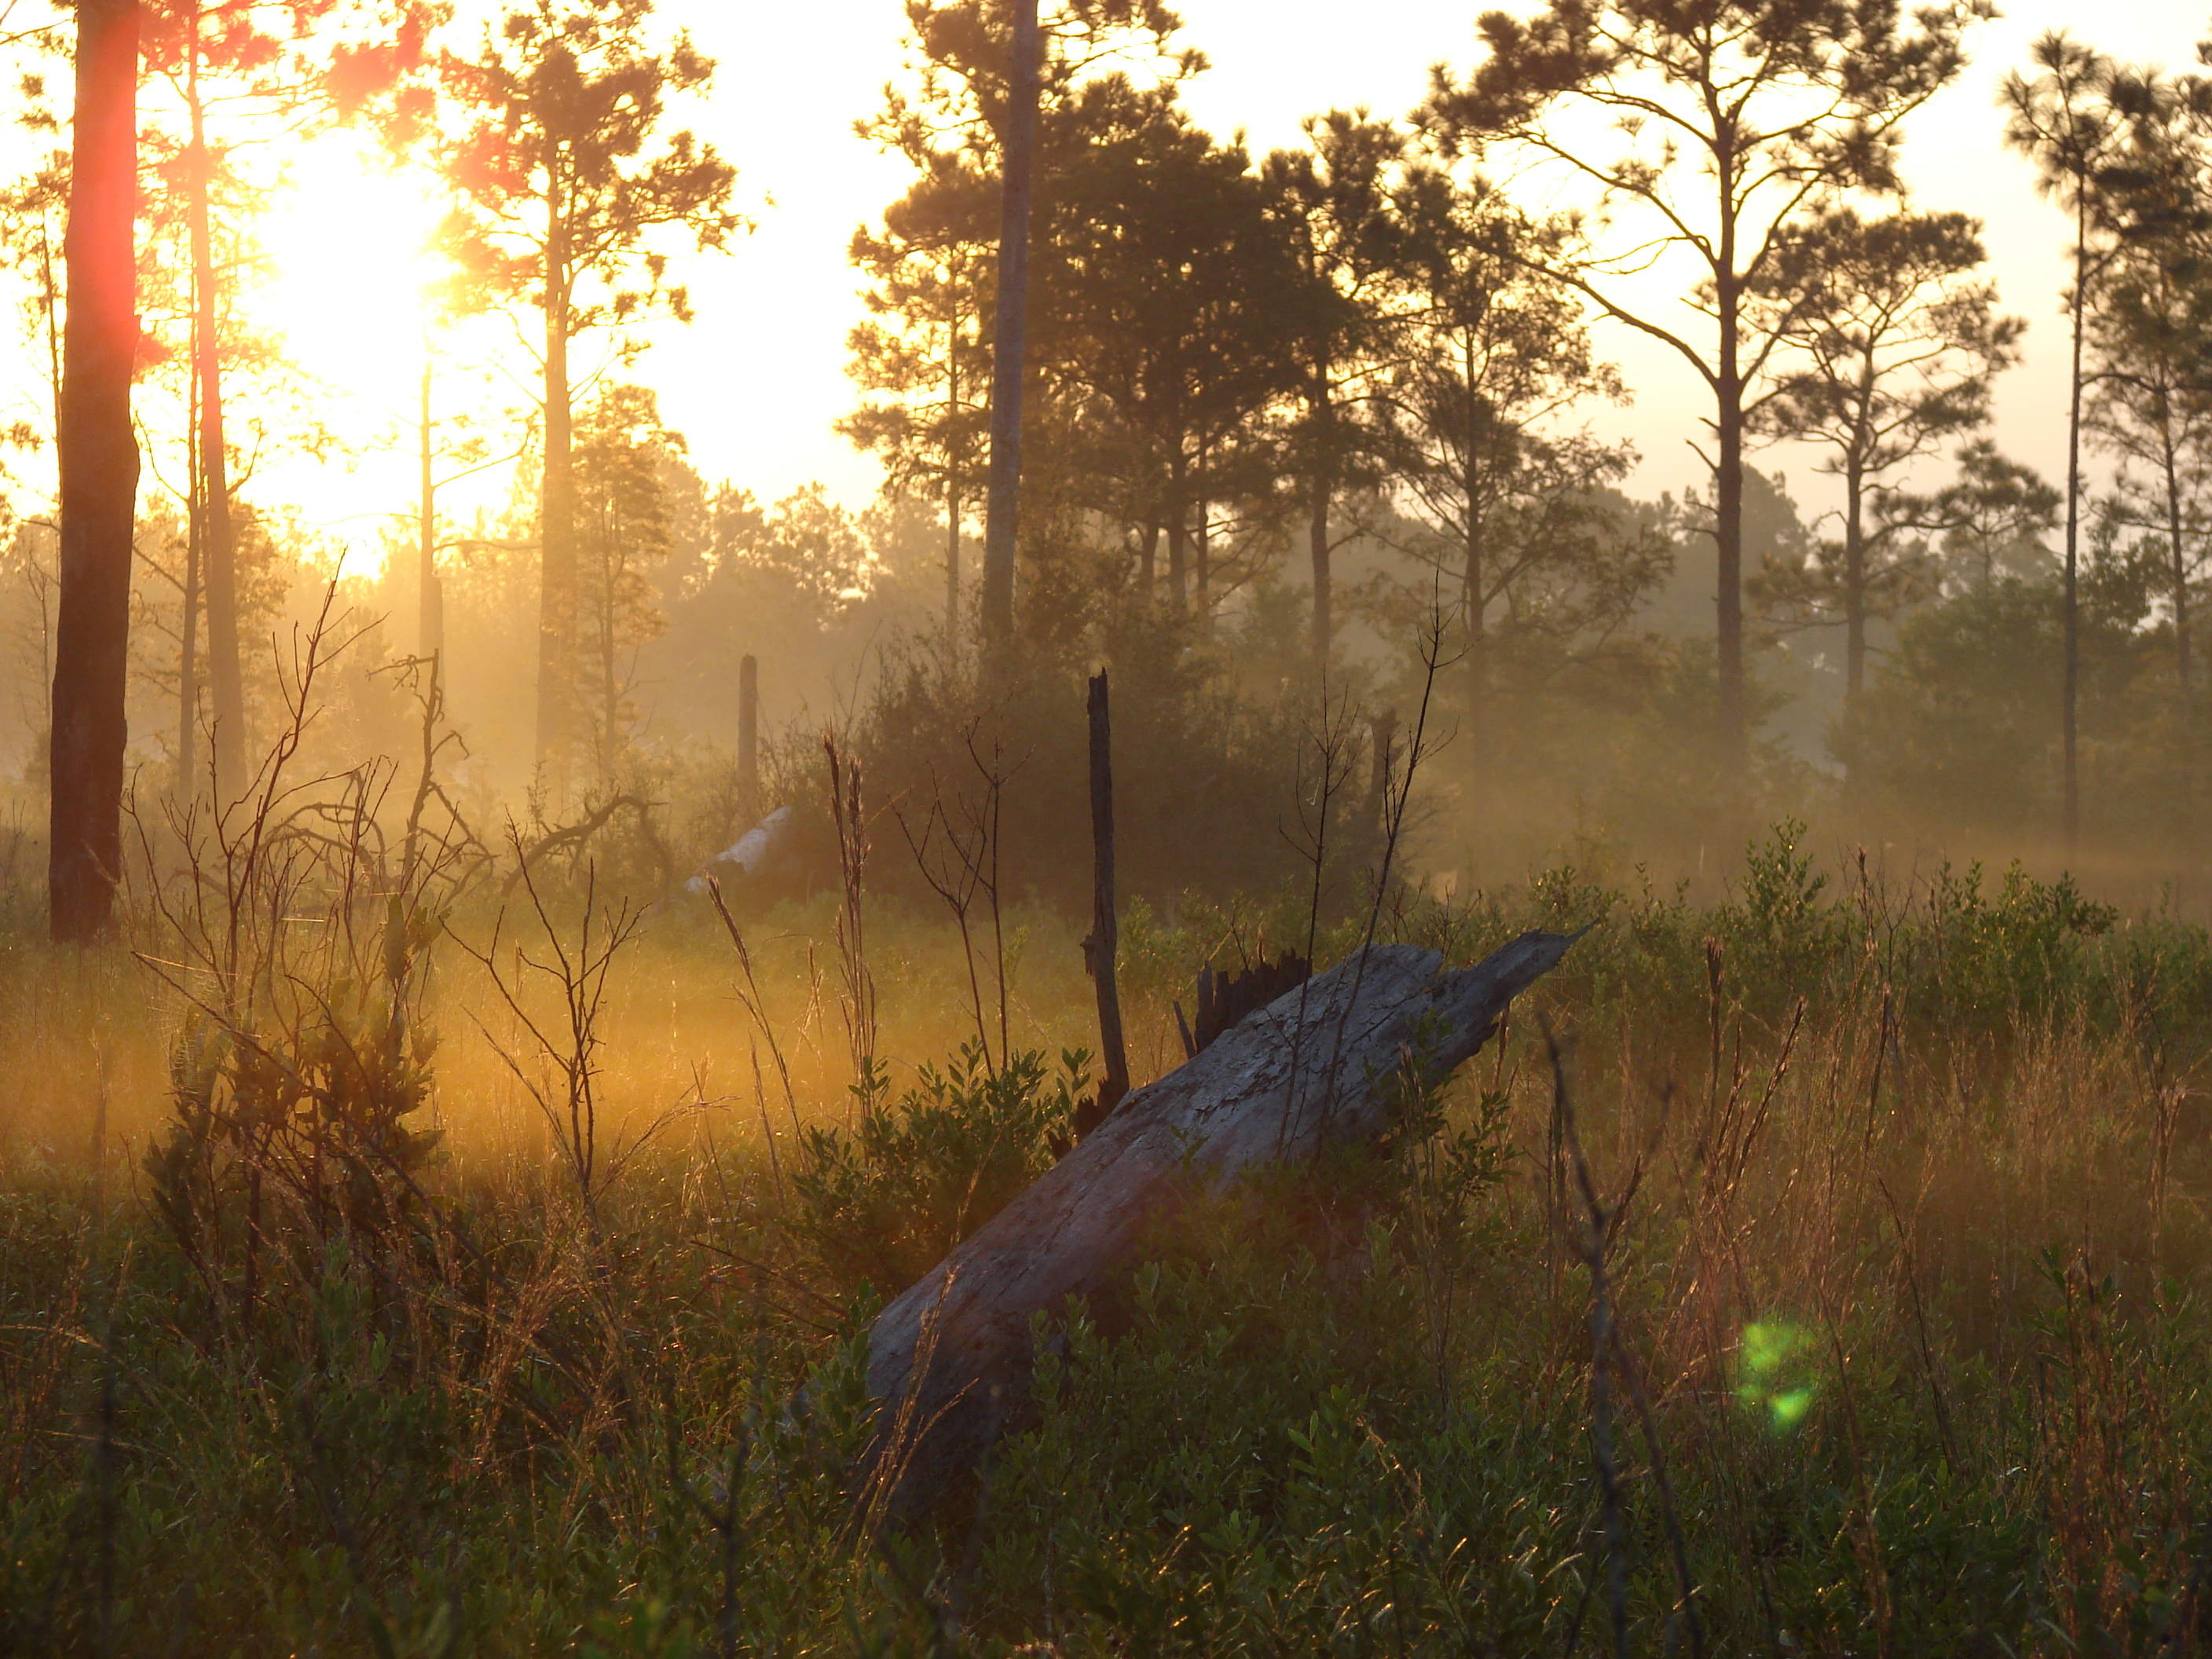 Sunrise at Grand Bay NERR/NWR